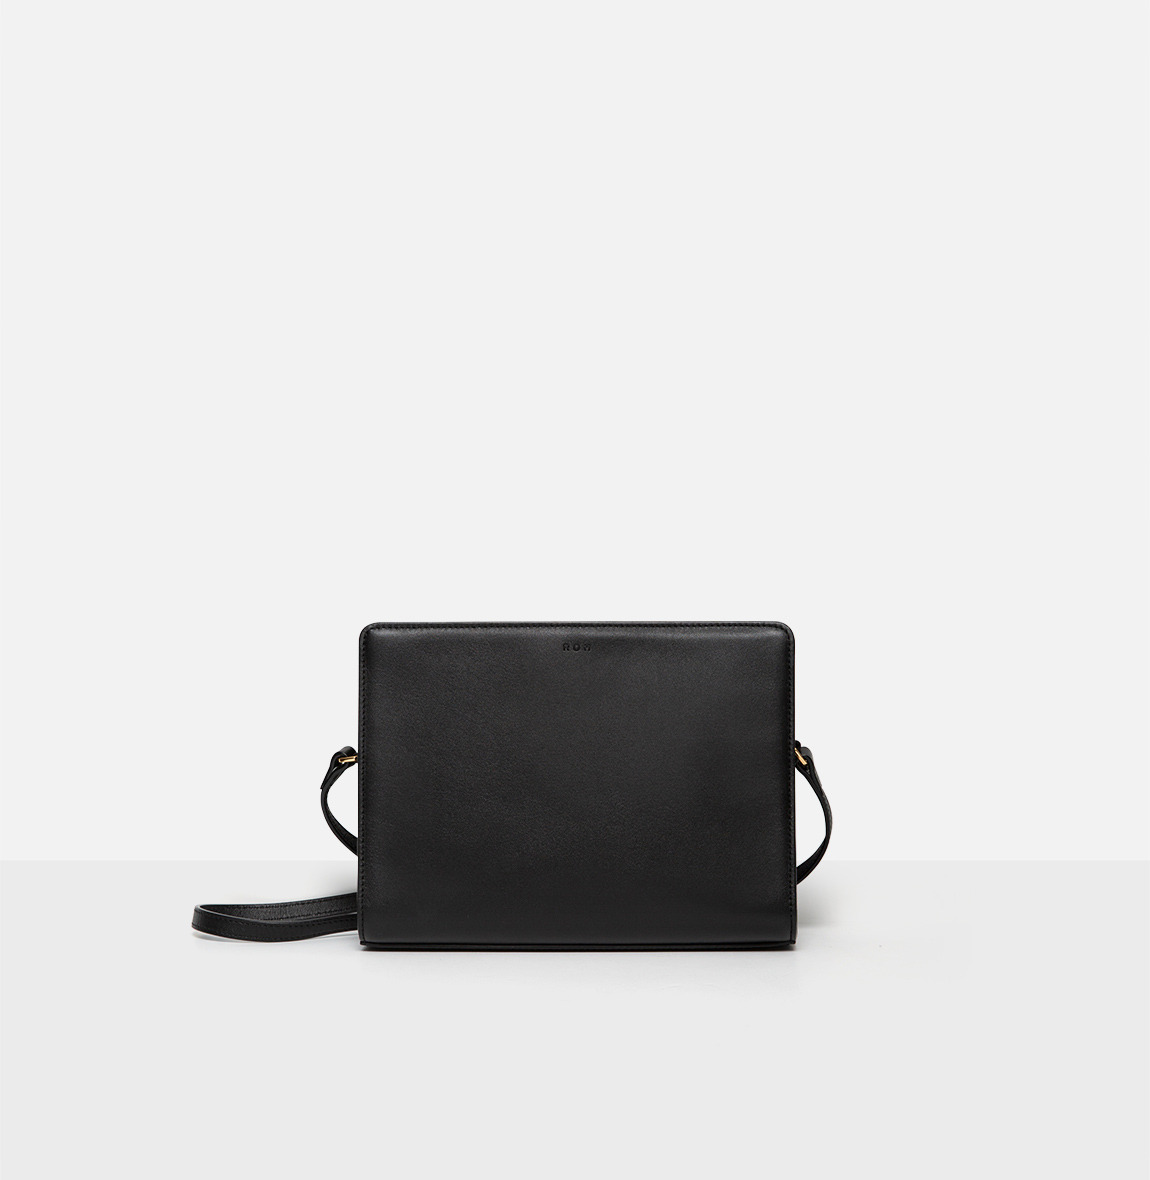 ROH Squarebag Black